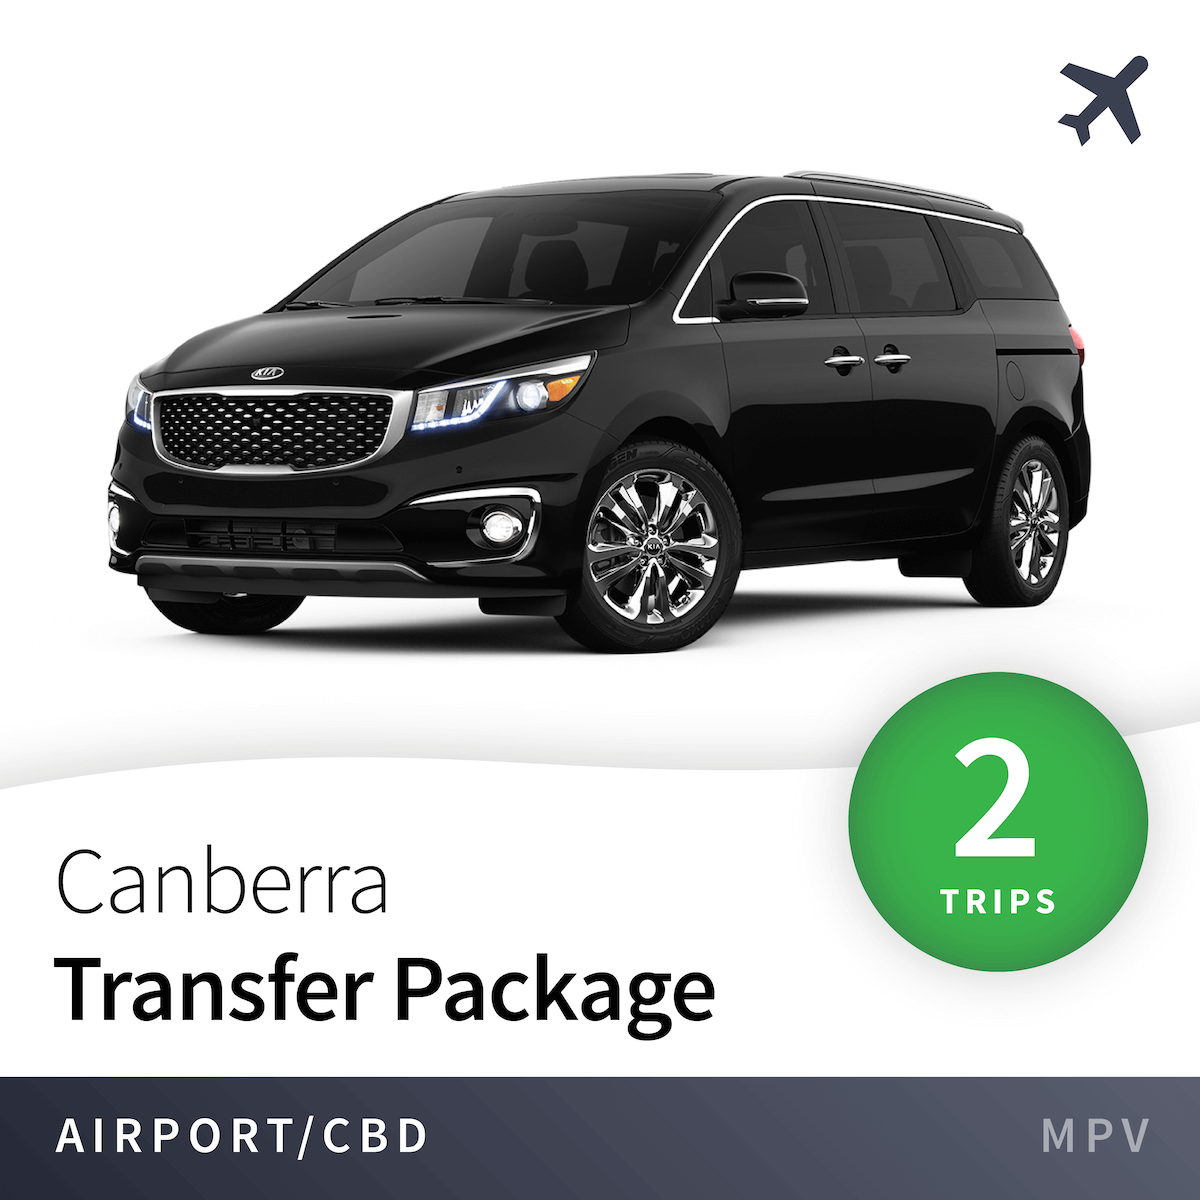 Canberra Airport Transfer Package - MPV (2 Trips) 6